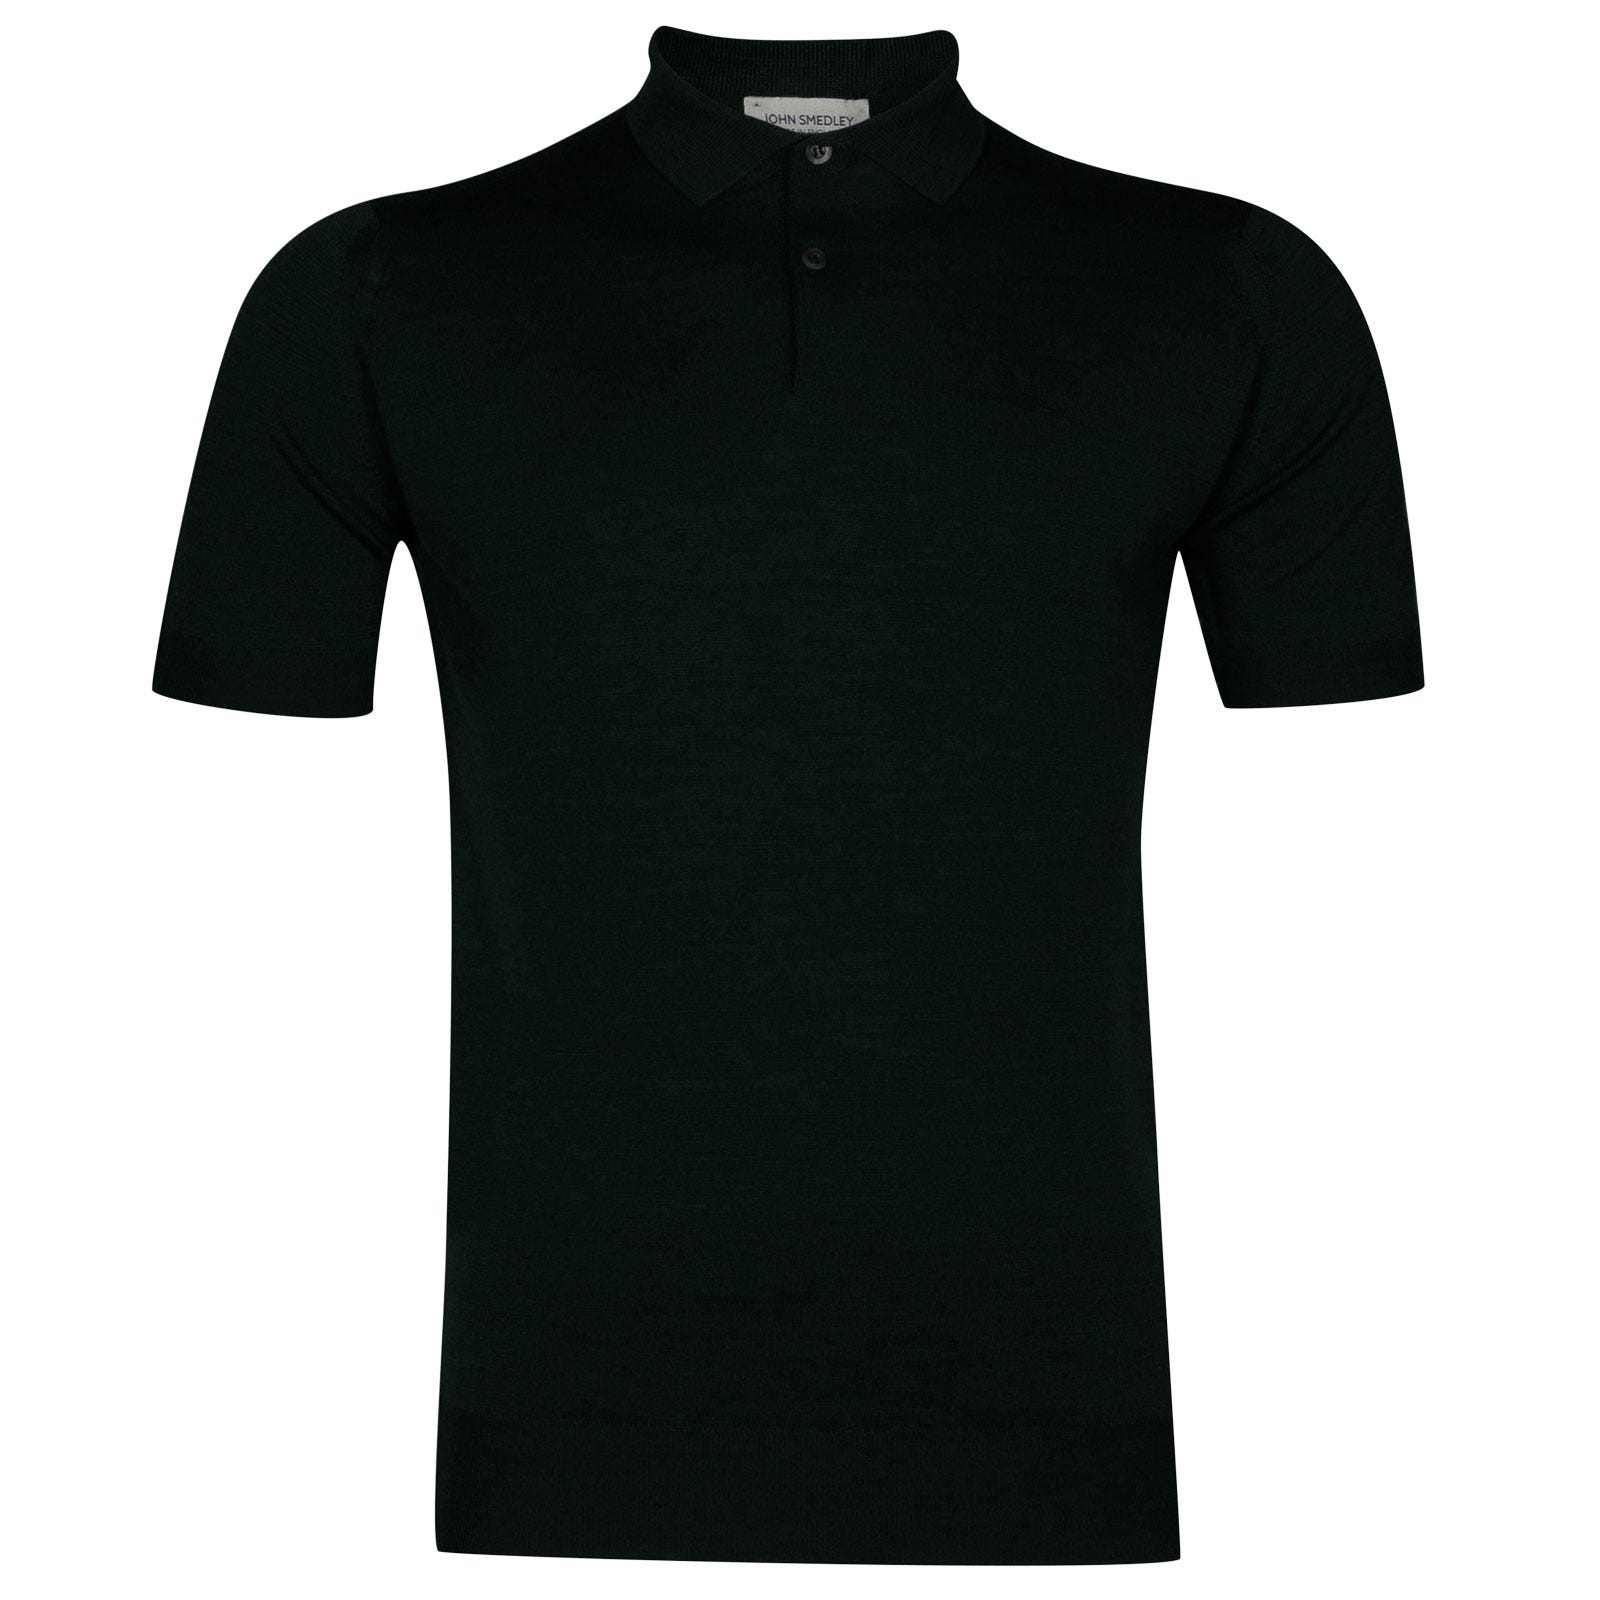 John Smedley payton Merino Wool Shirt in Racing Green-XXL